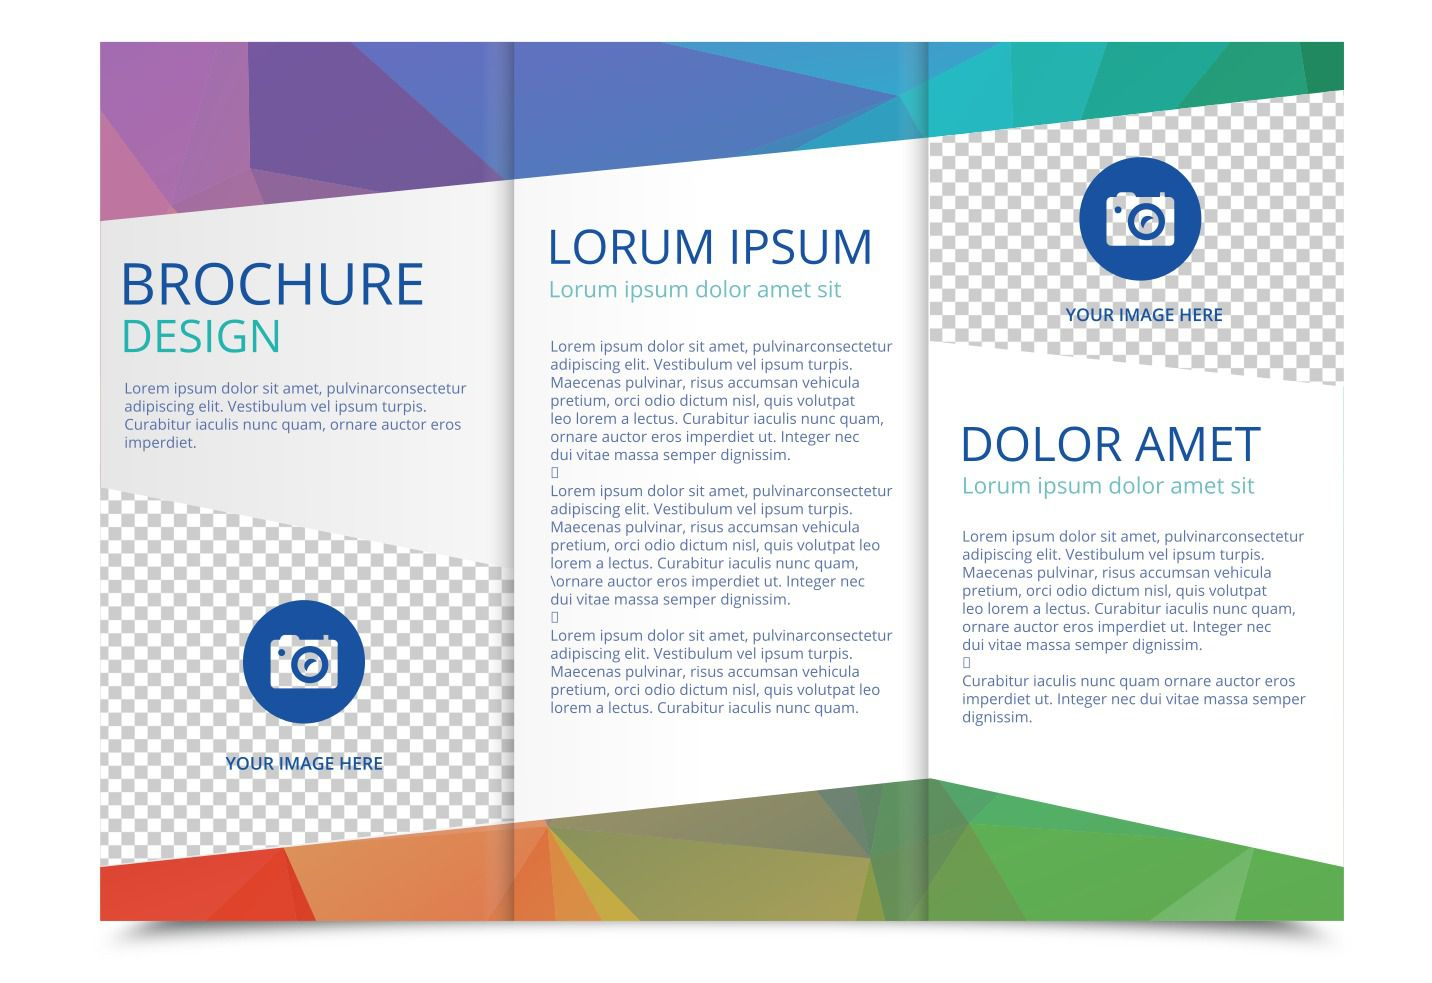 005 Phenomenal Free Trifold Brochure Template Concept  Tri Fold For Publisher Word MicrosoftFull